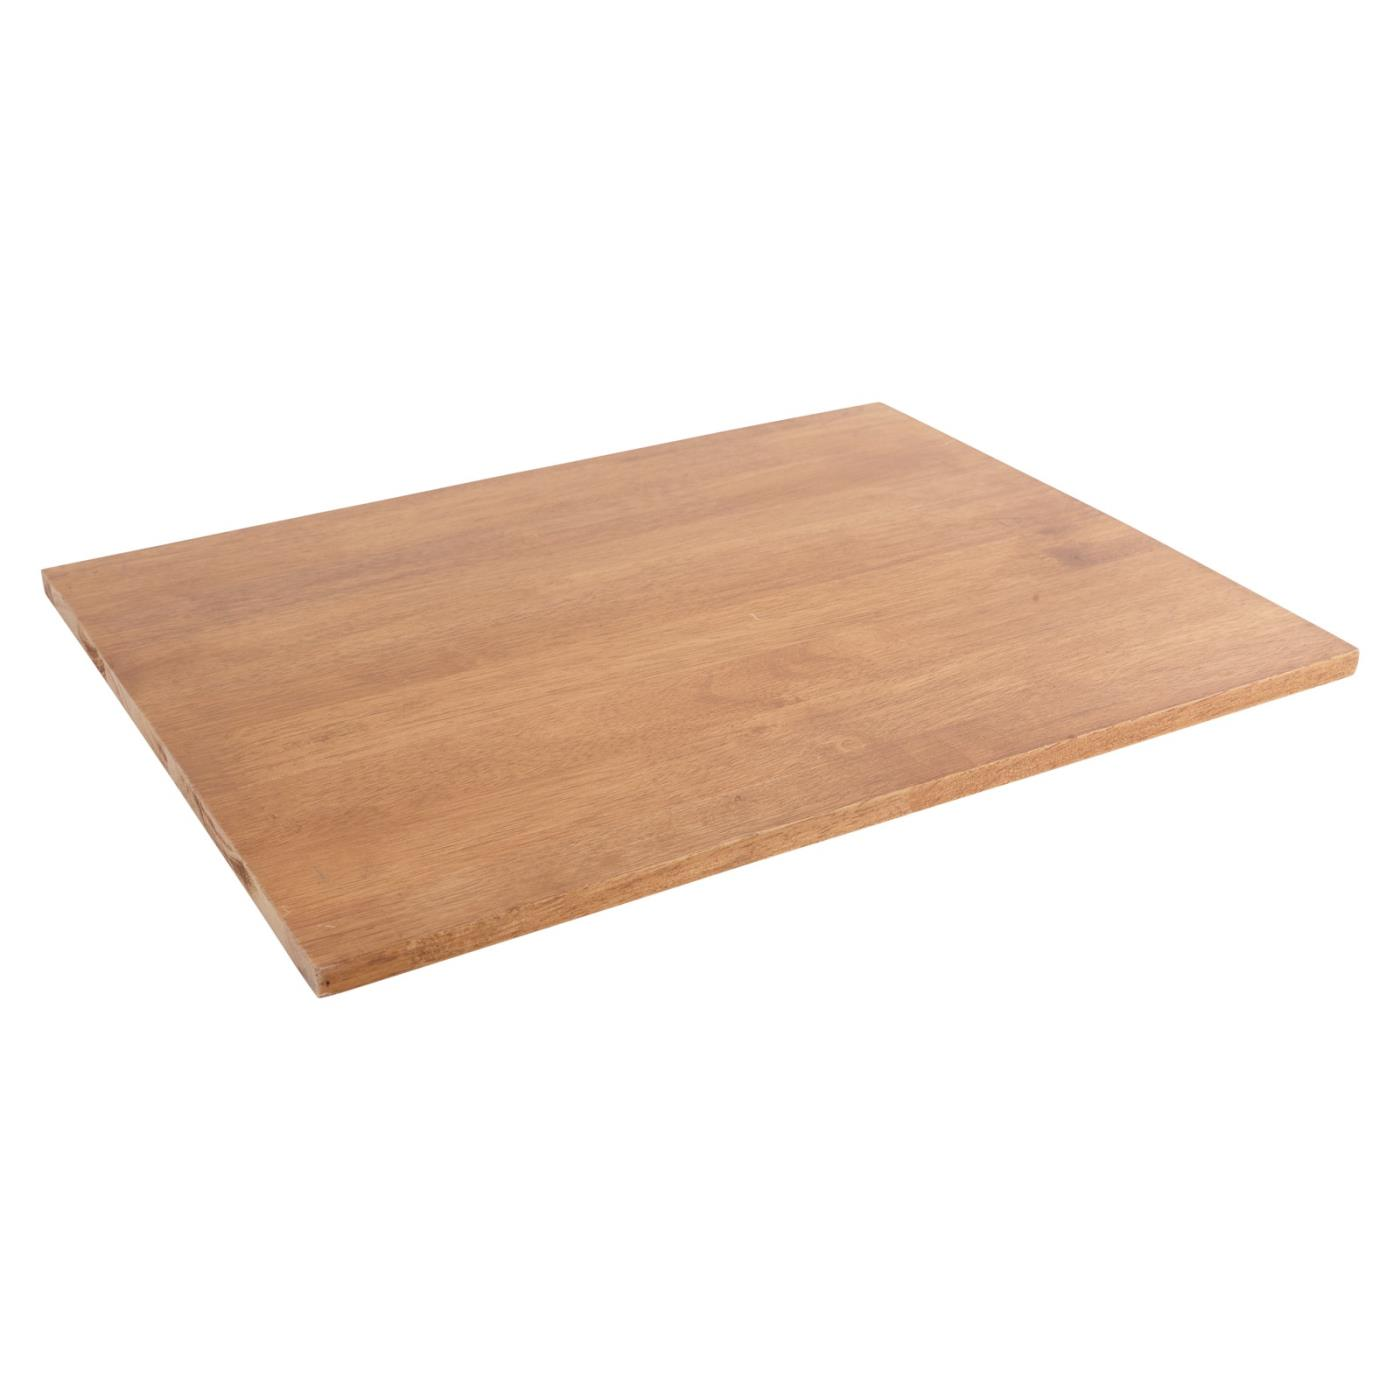 Wood Montana Rectangular Platform